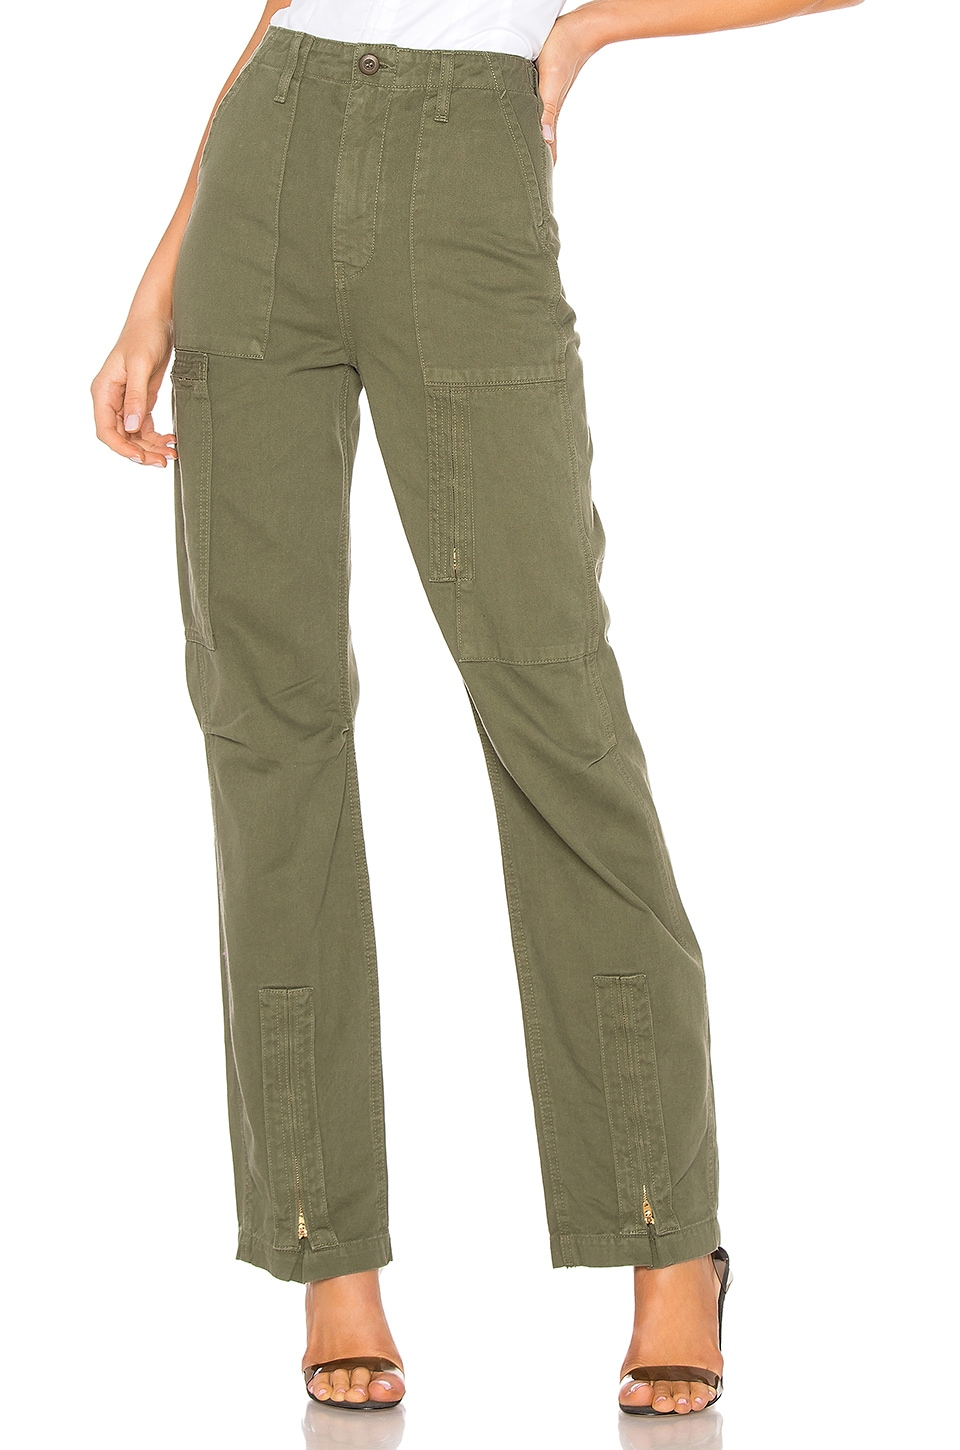 RE/DONE PANTALON CARGO